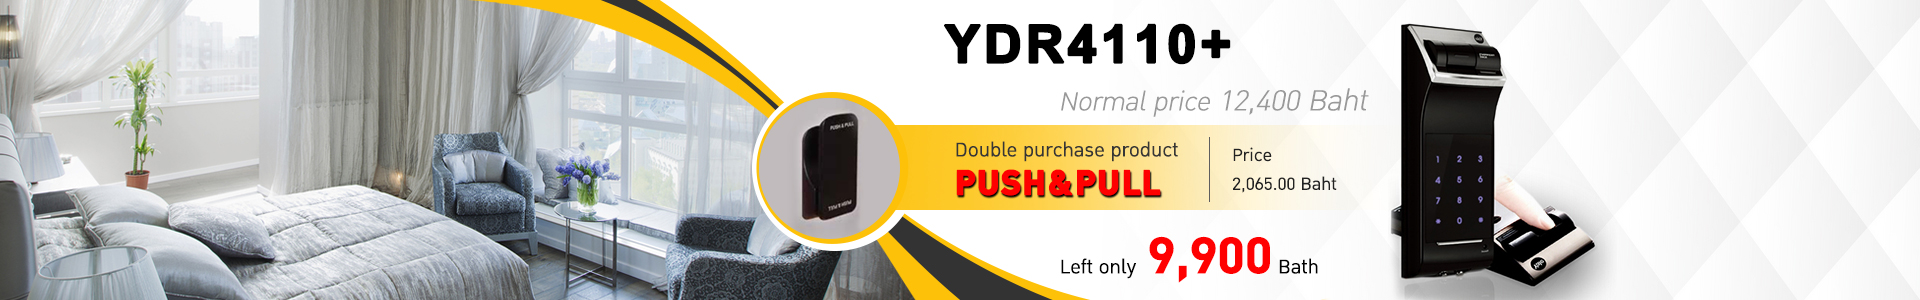 YDR4110+